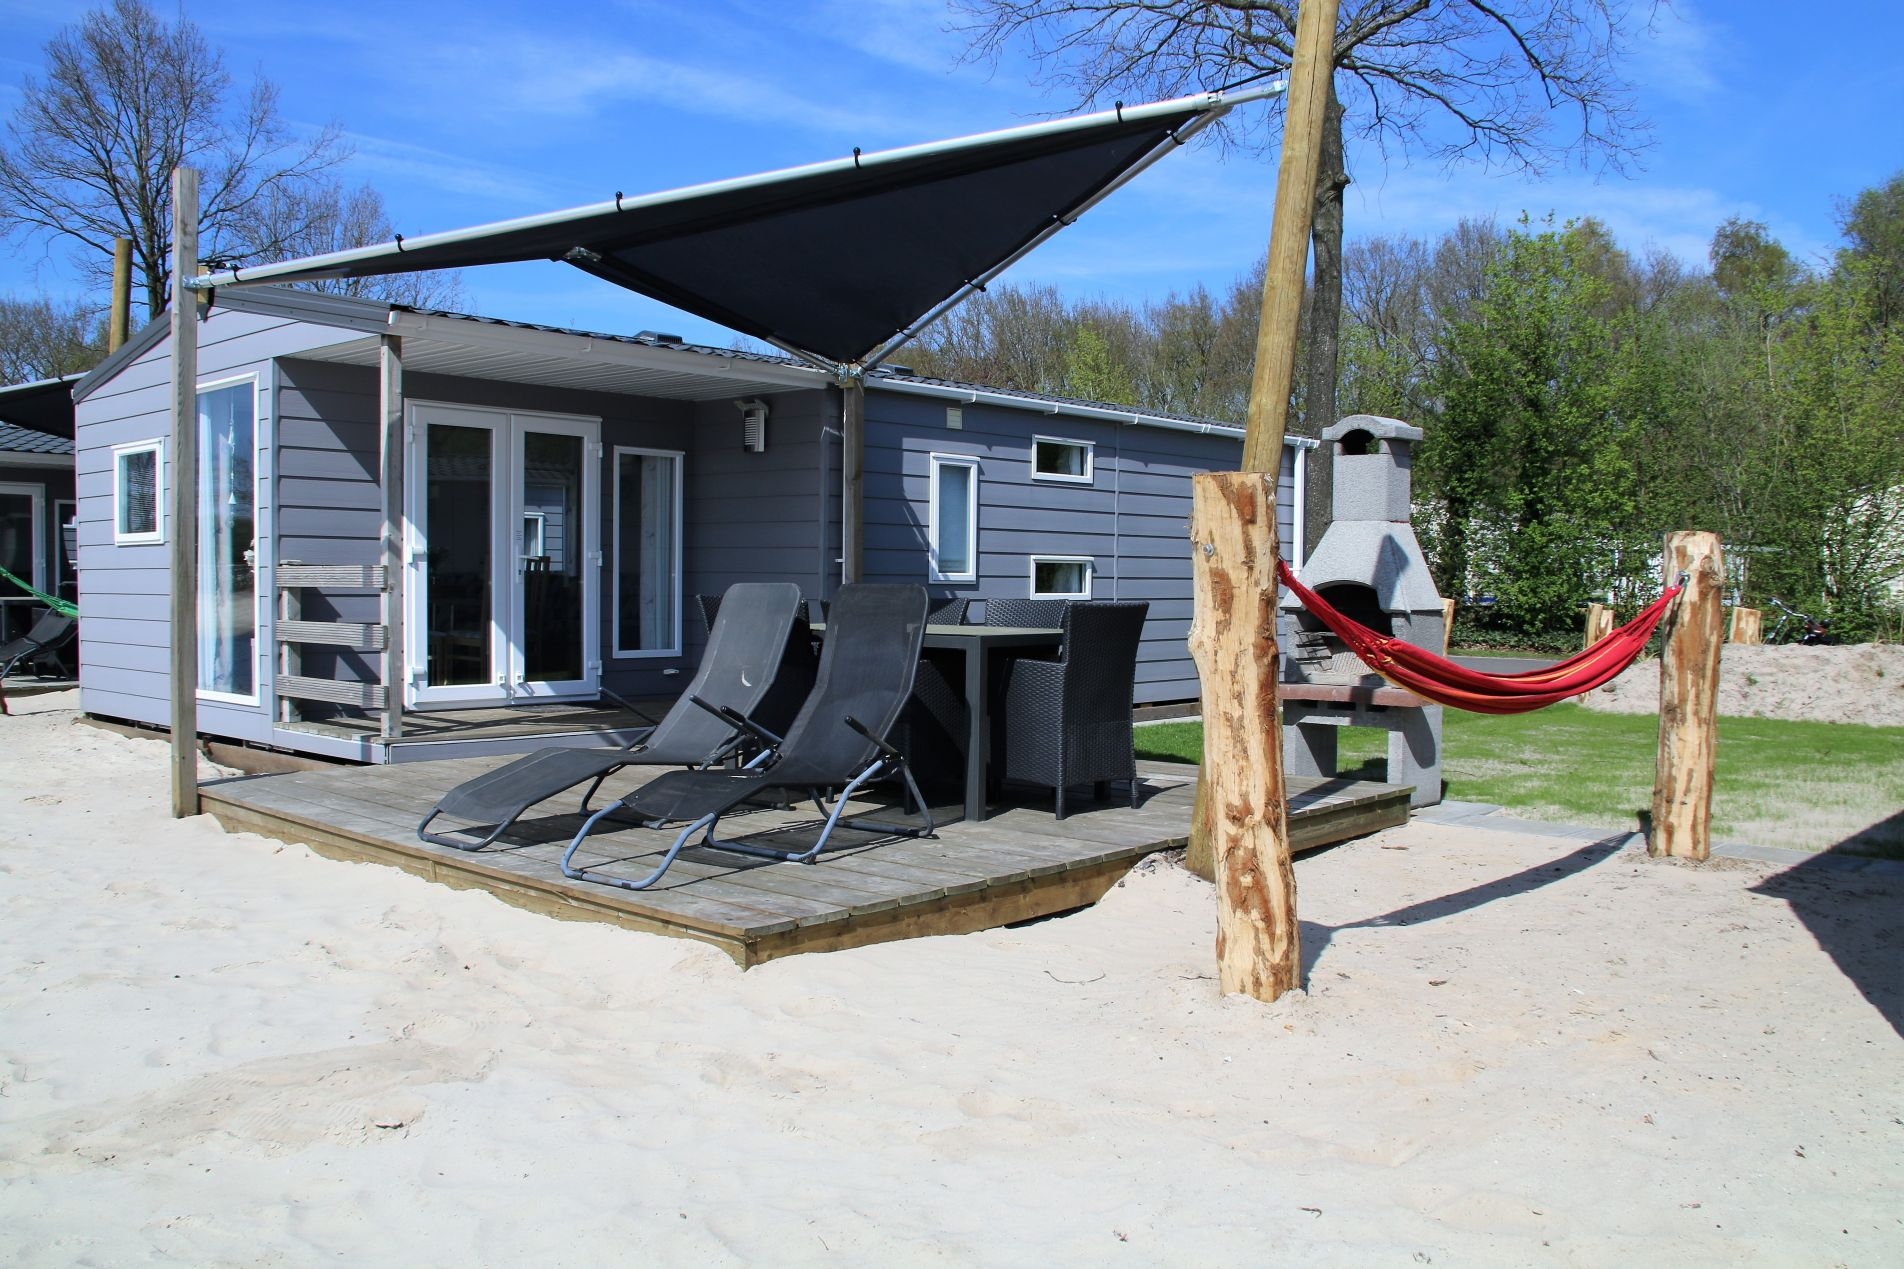 Beachlodge Top TV 6 pers. - prachtige strandchalets